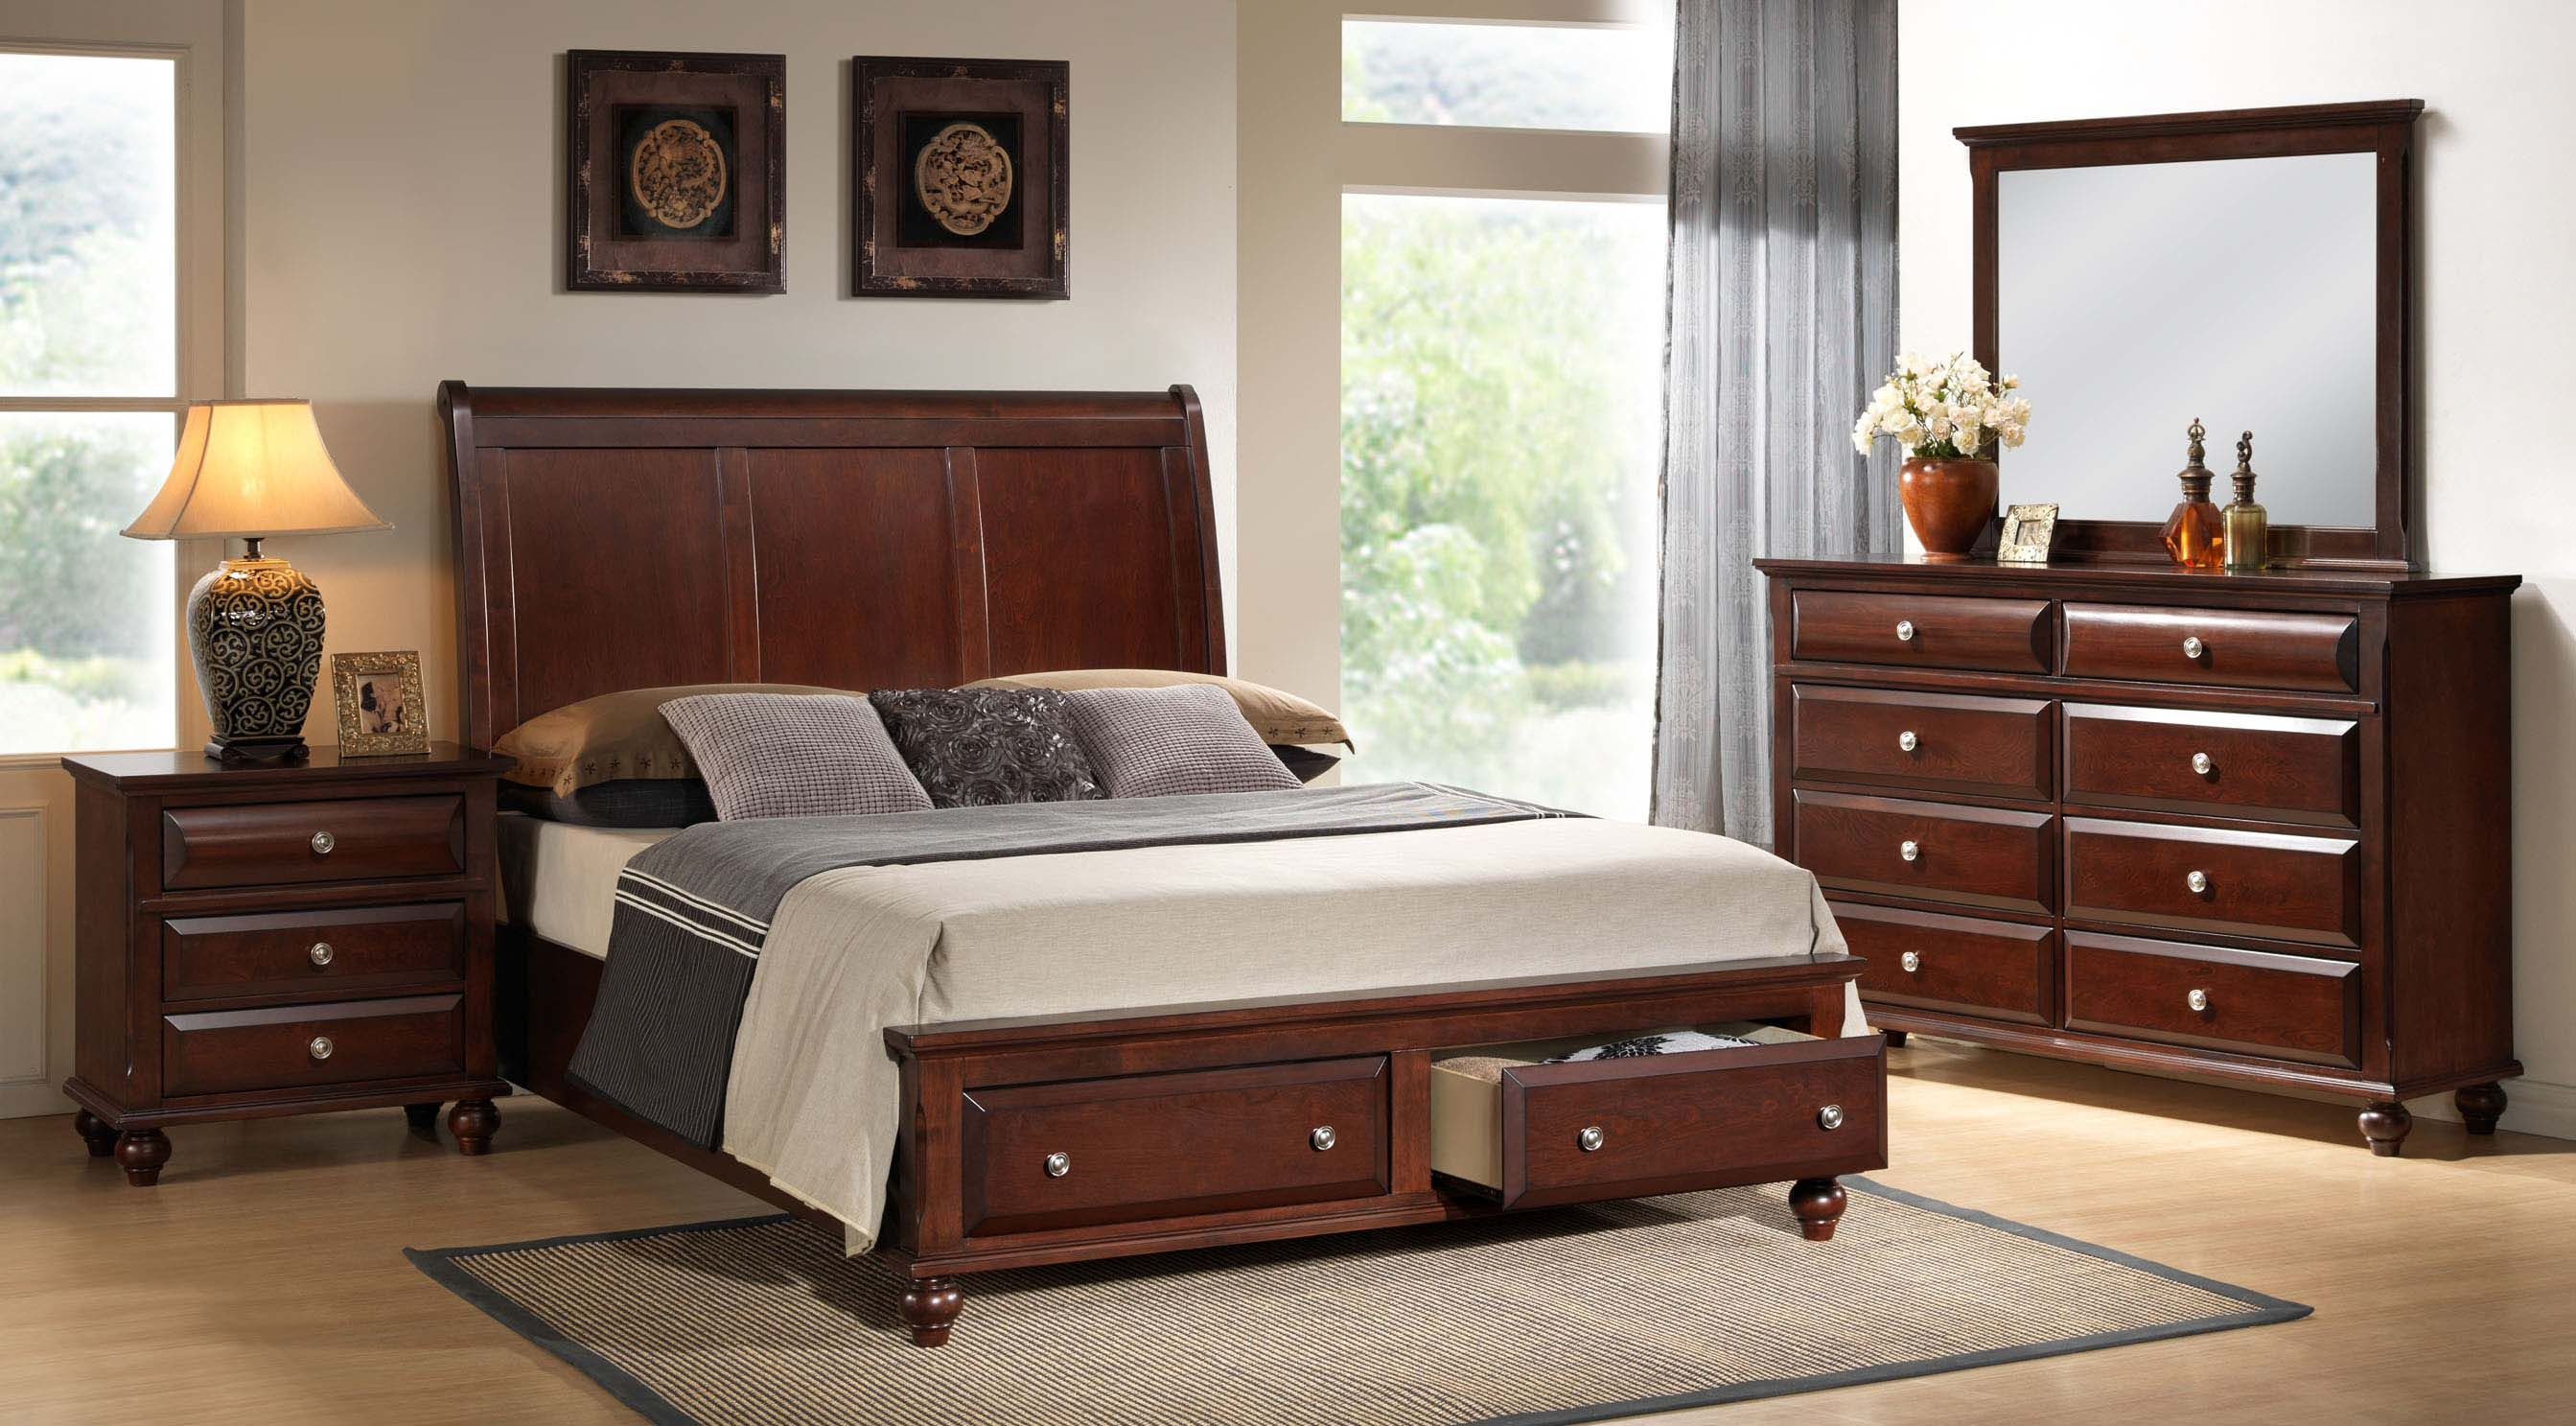 concord cherry finish wood bedroom set queen plateform bed dresser